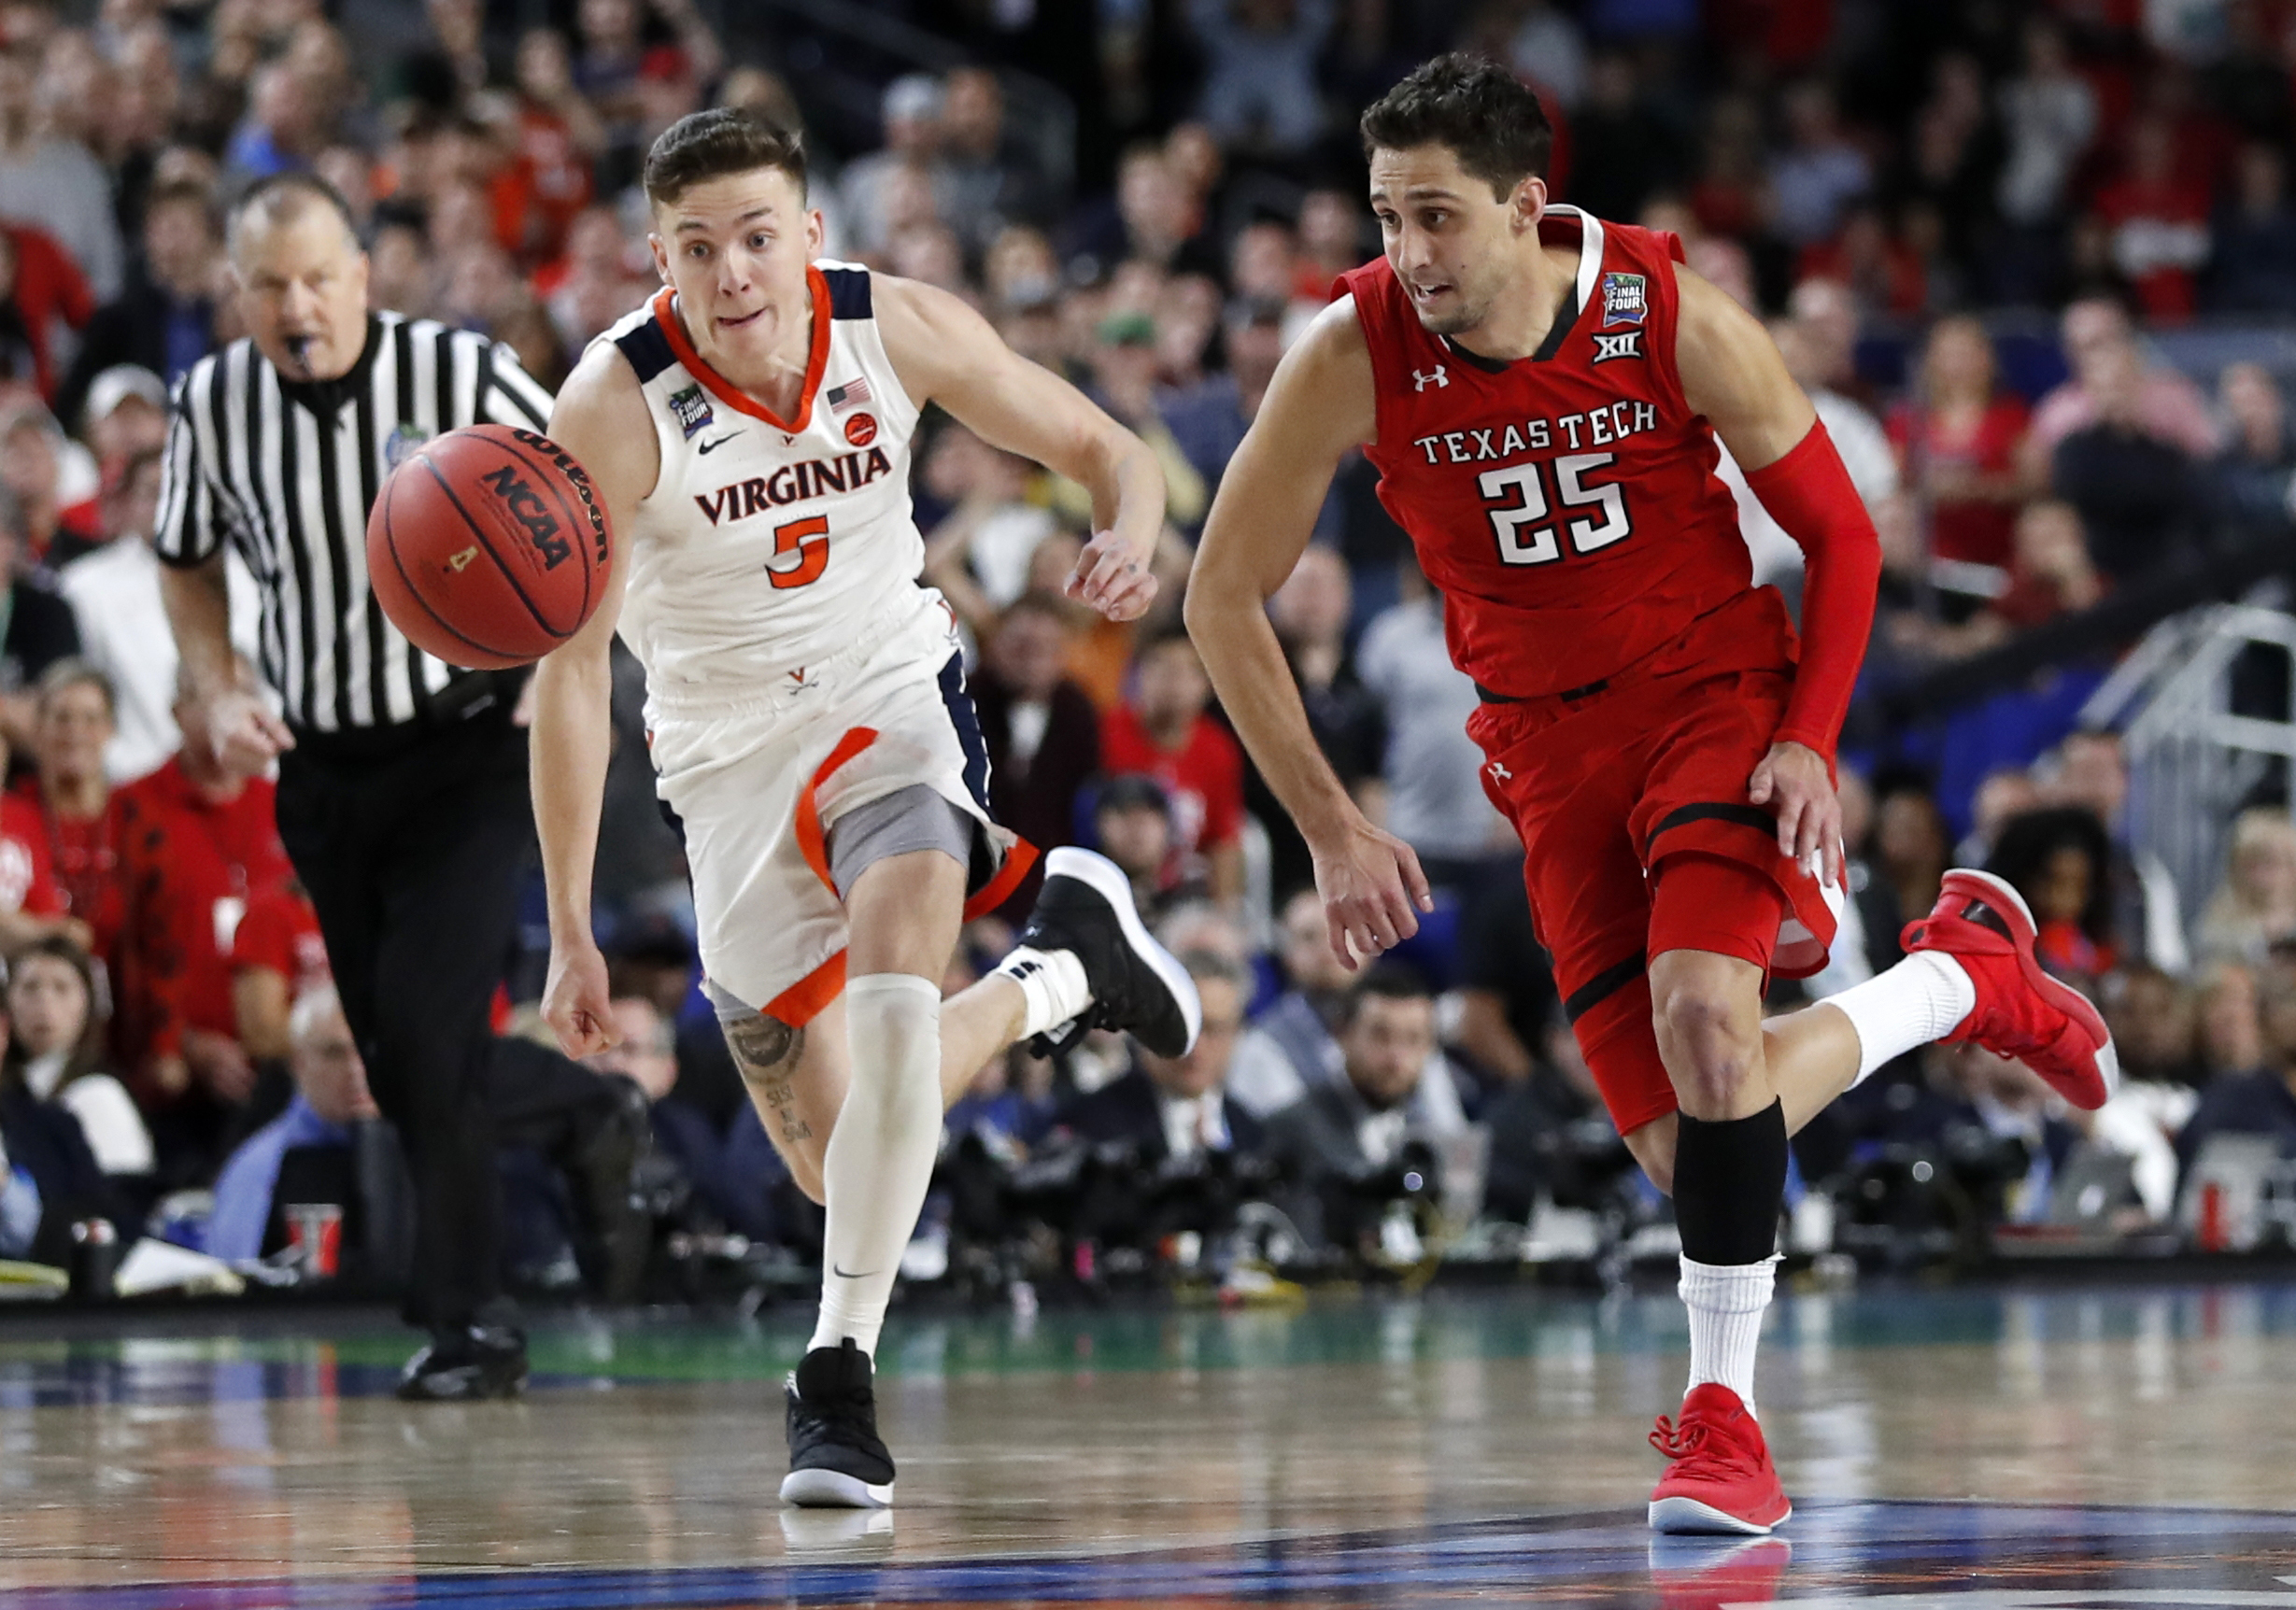 super popular 59b12 0f12d Virginia s Kyle Guy (5) and Texas Tech s Davide Moretti (25) chase a loose  ball during the overtime in the championship of the Final Four NCAA college  ...